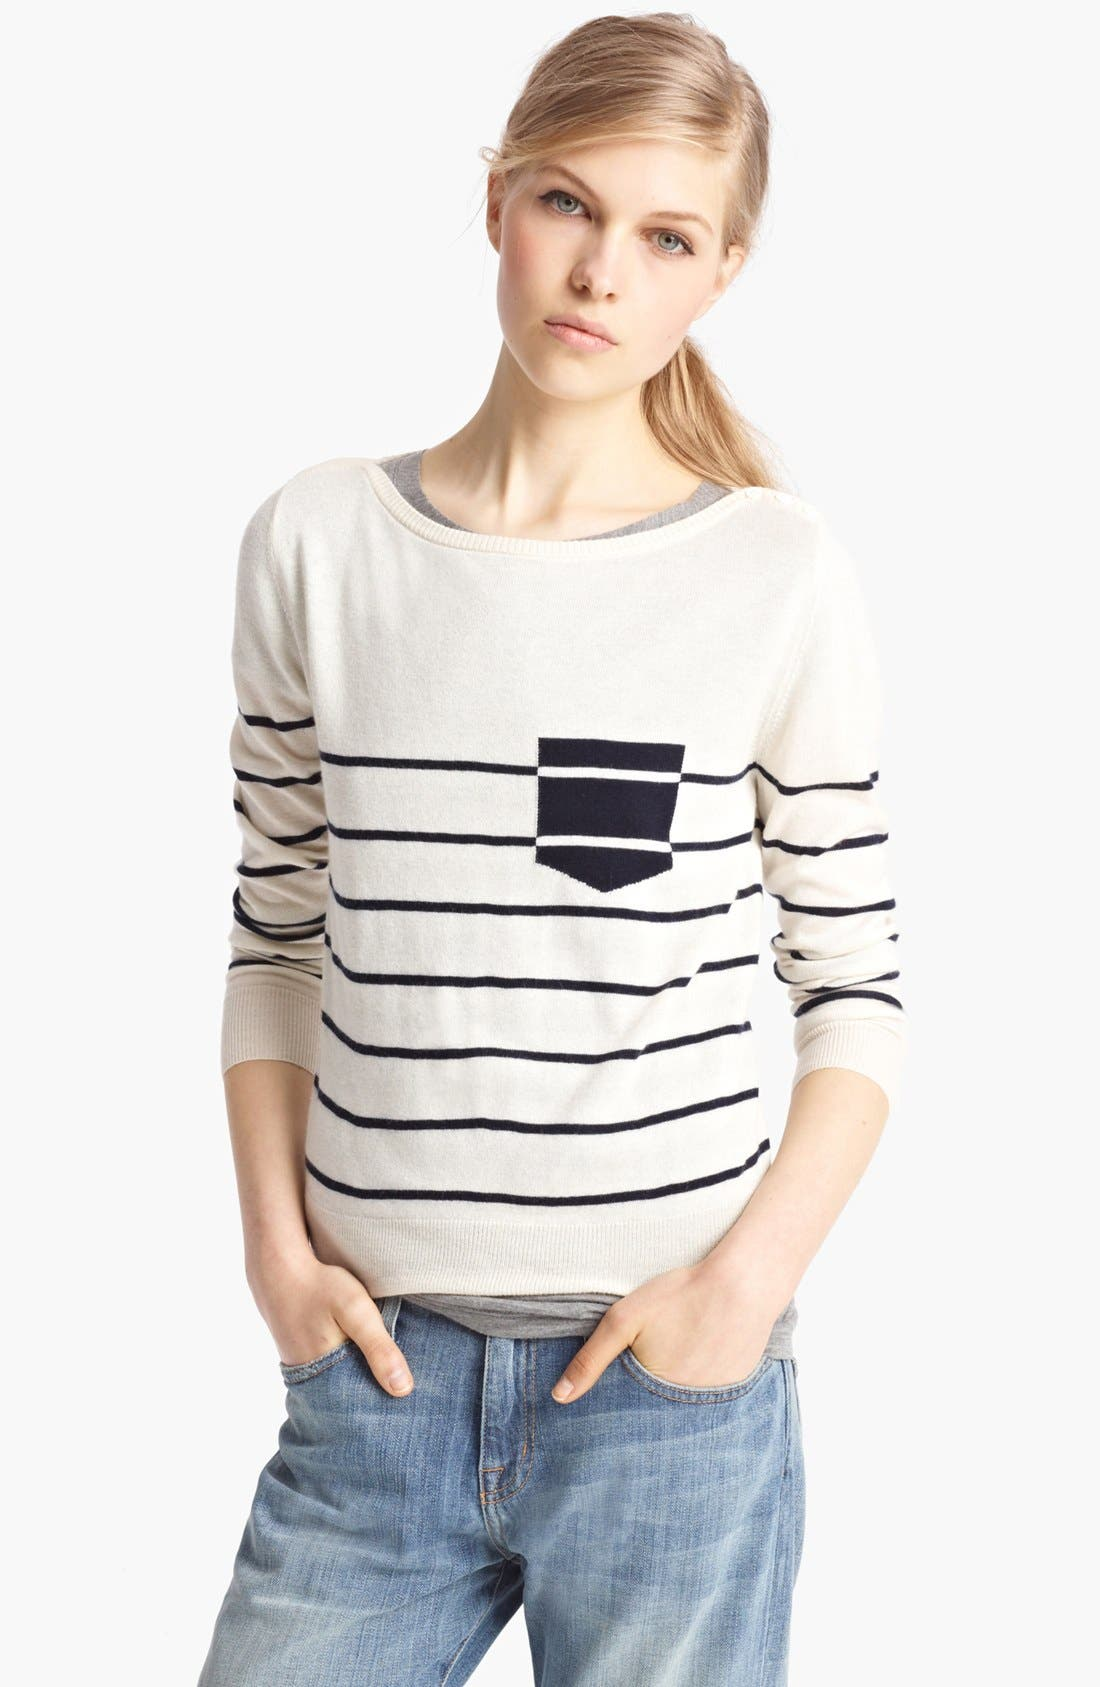 Main Image - Band of Outsiders Contrast Pocket Sweater